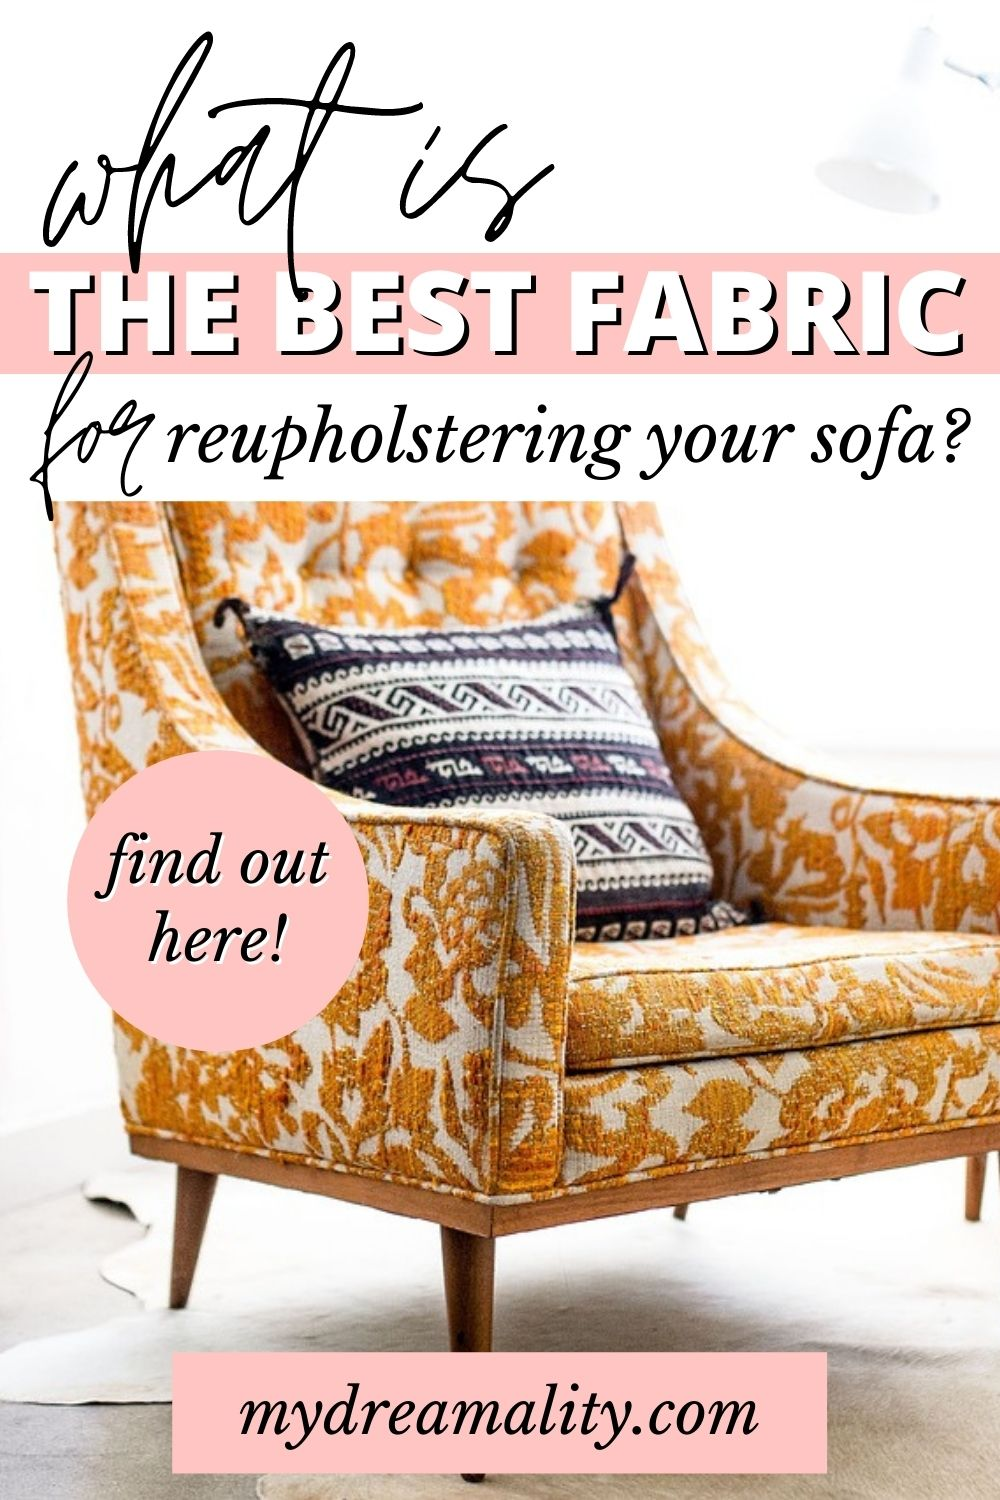 What is the best fabric to use for reupholstering a sofa?